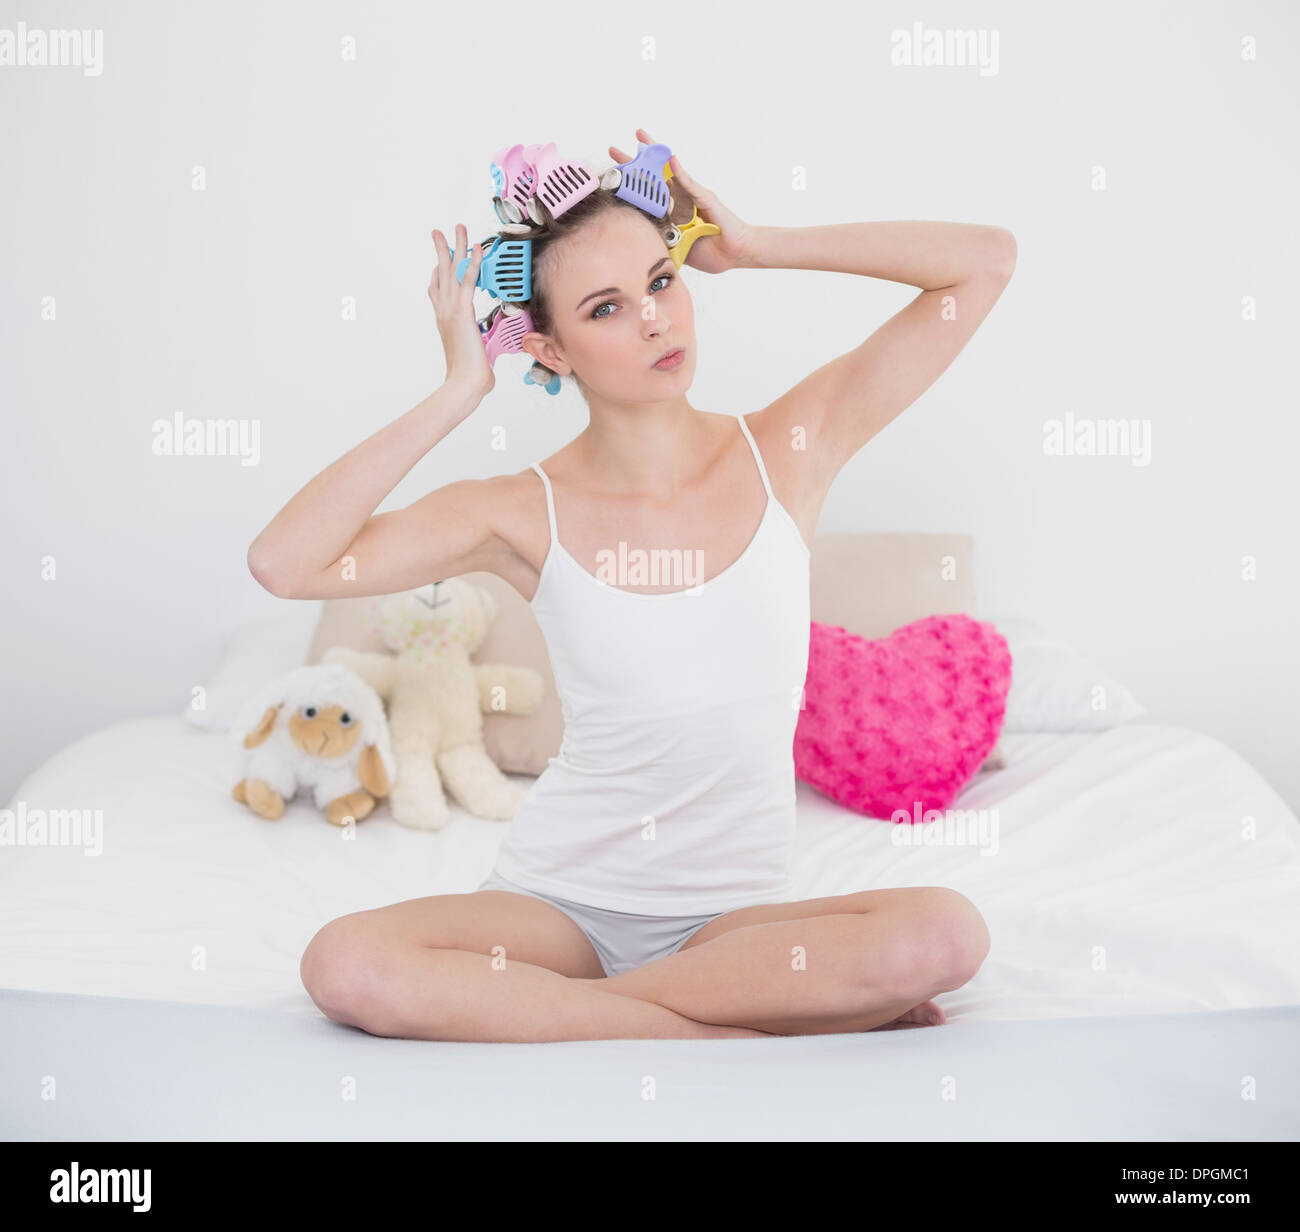 Tacaud natural brown haired woman fixing her hair curlers Photo Stock